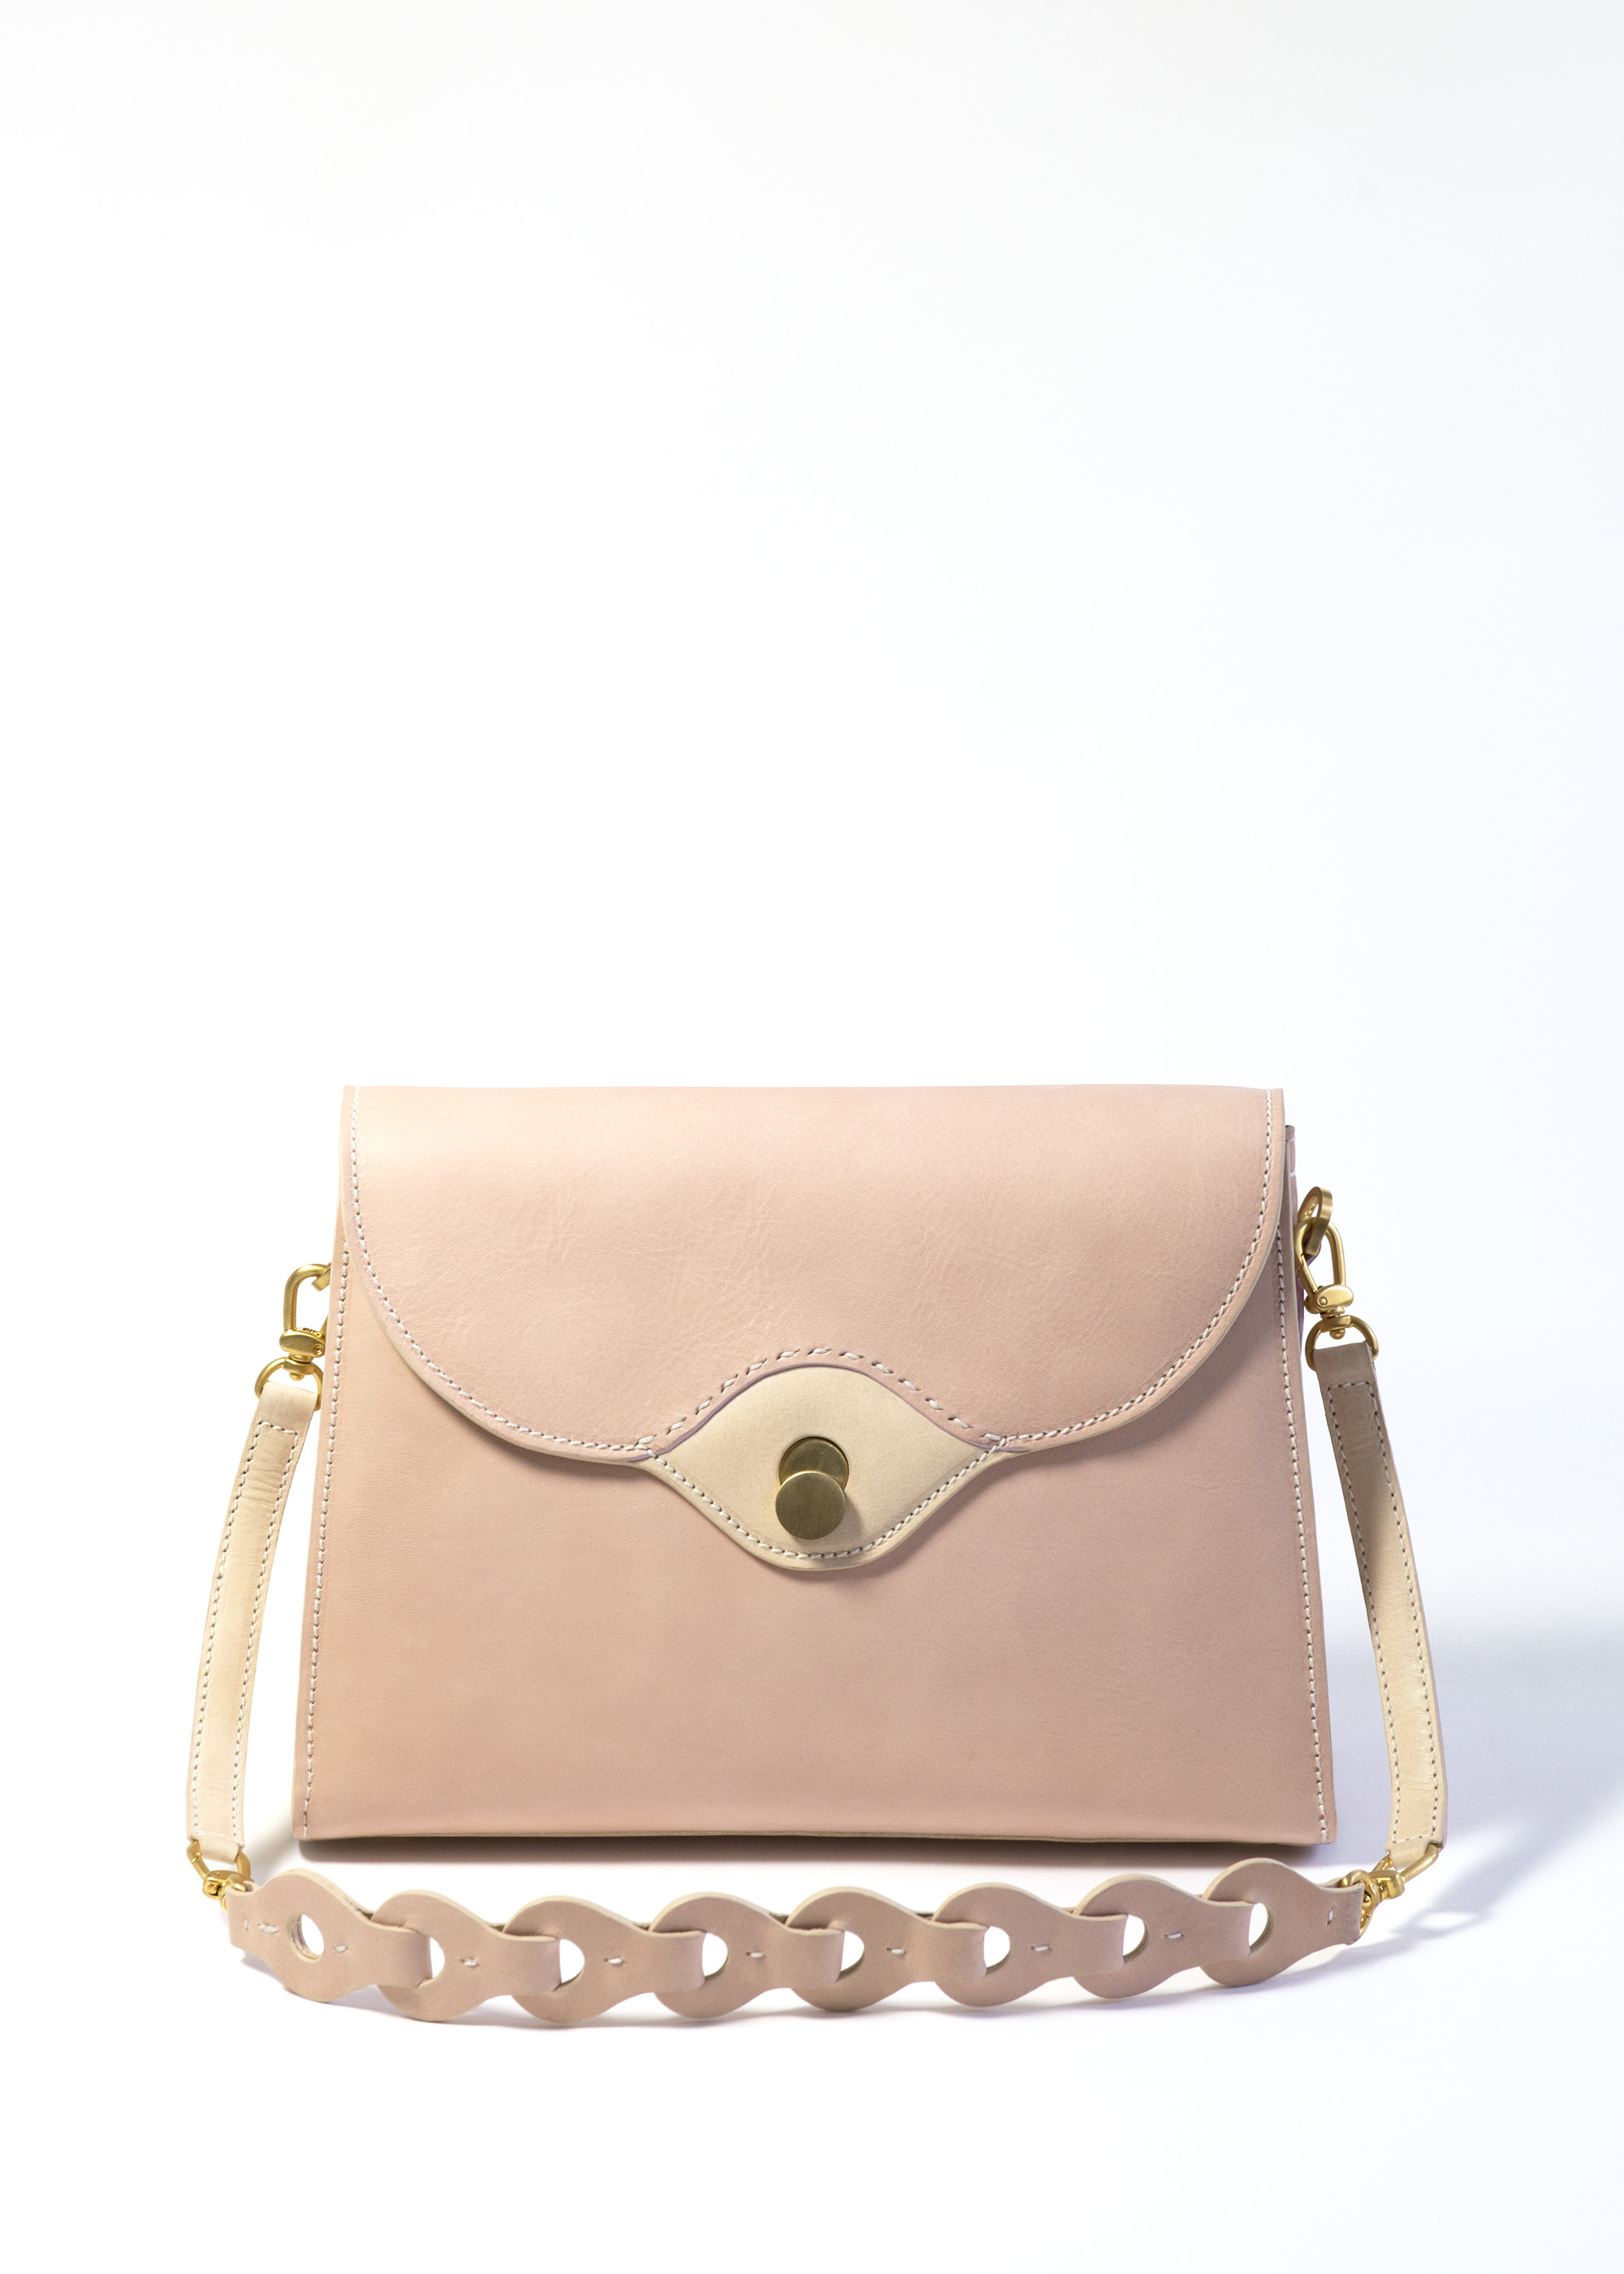 Ondina Orchidea Bag by LAHARA on curated-crowd.com